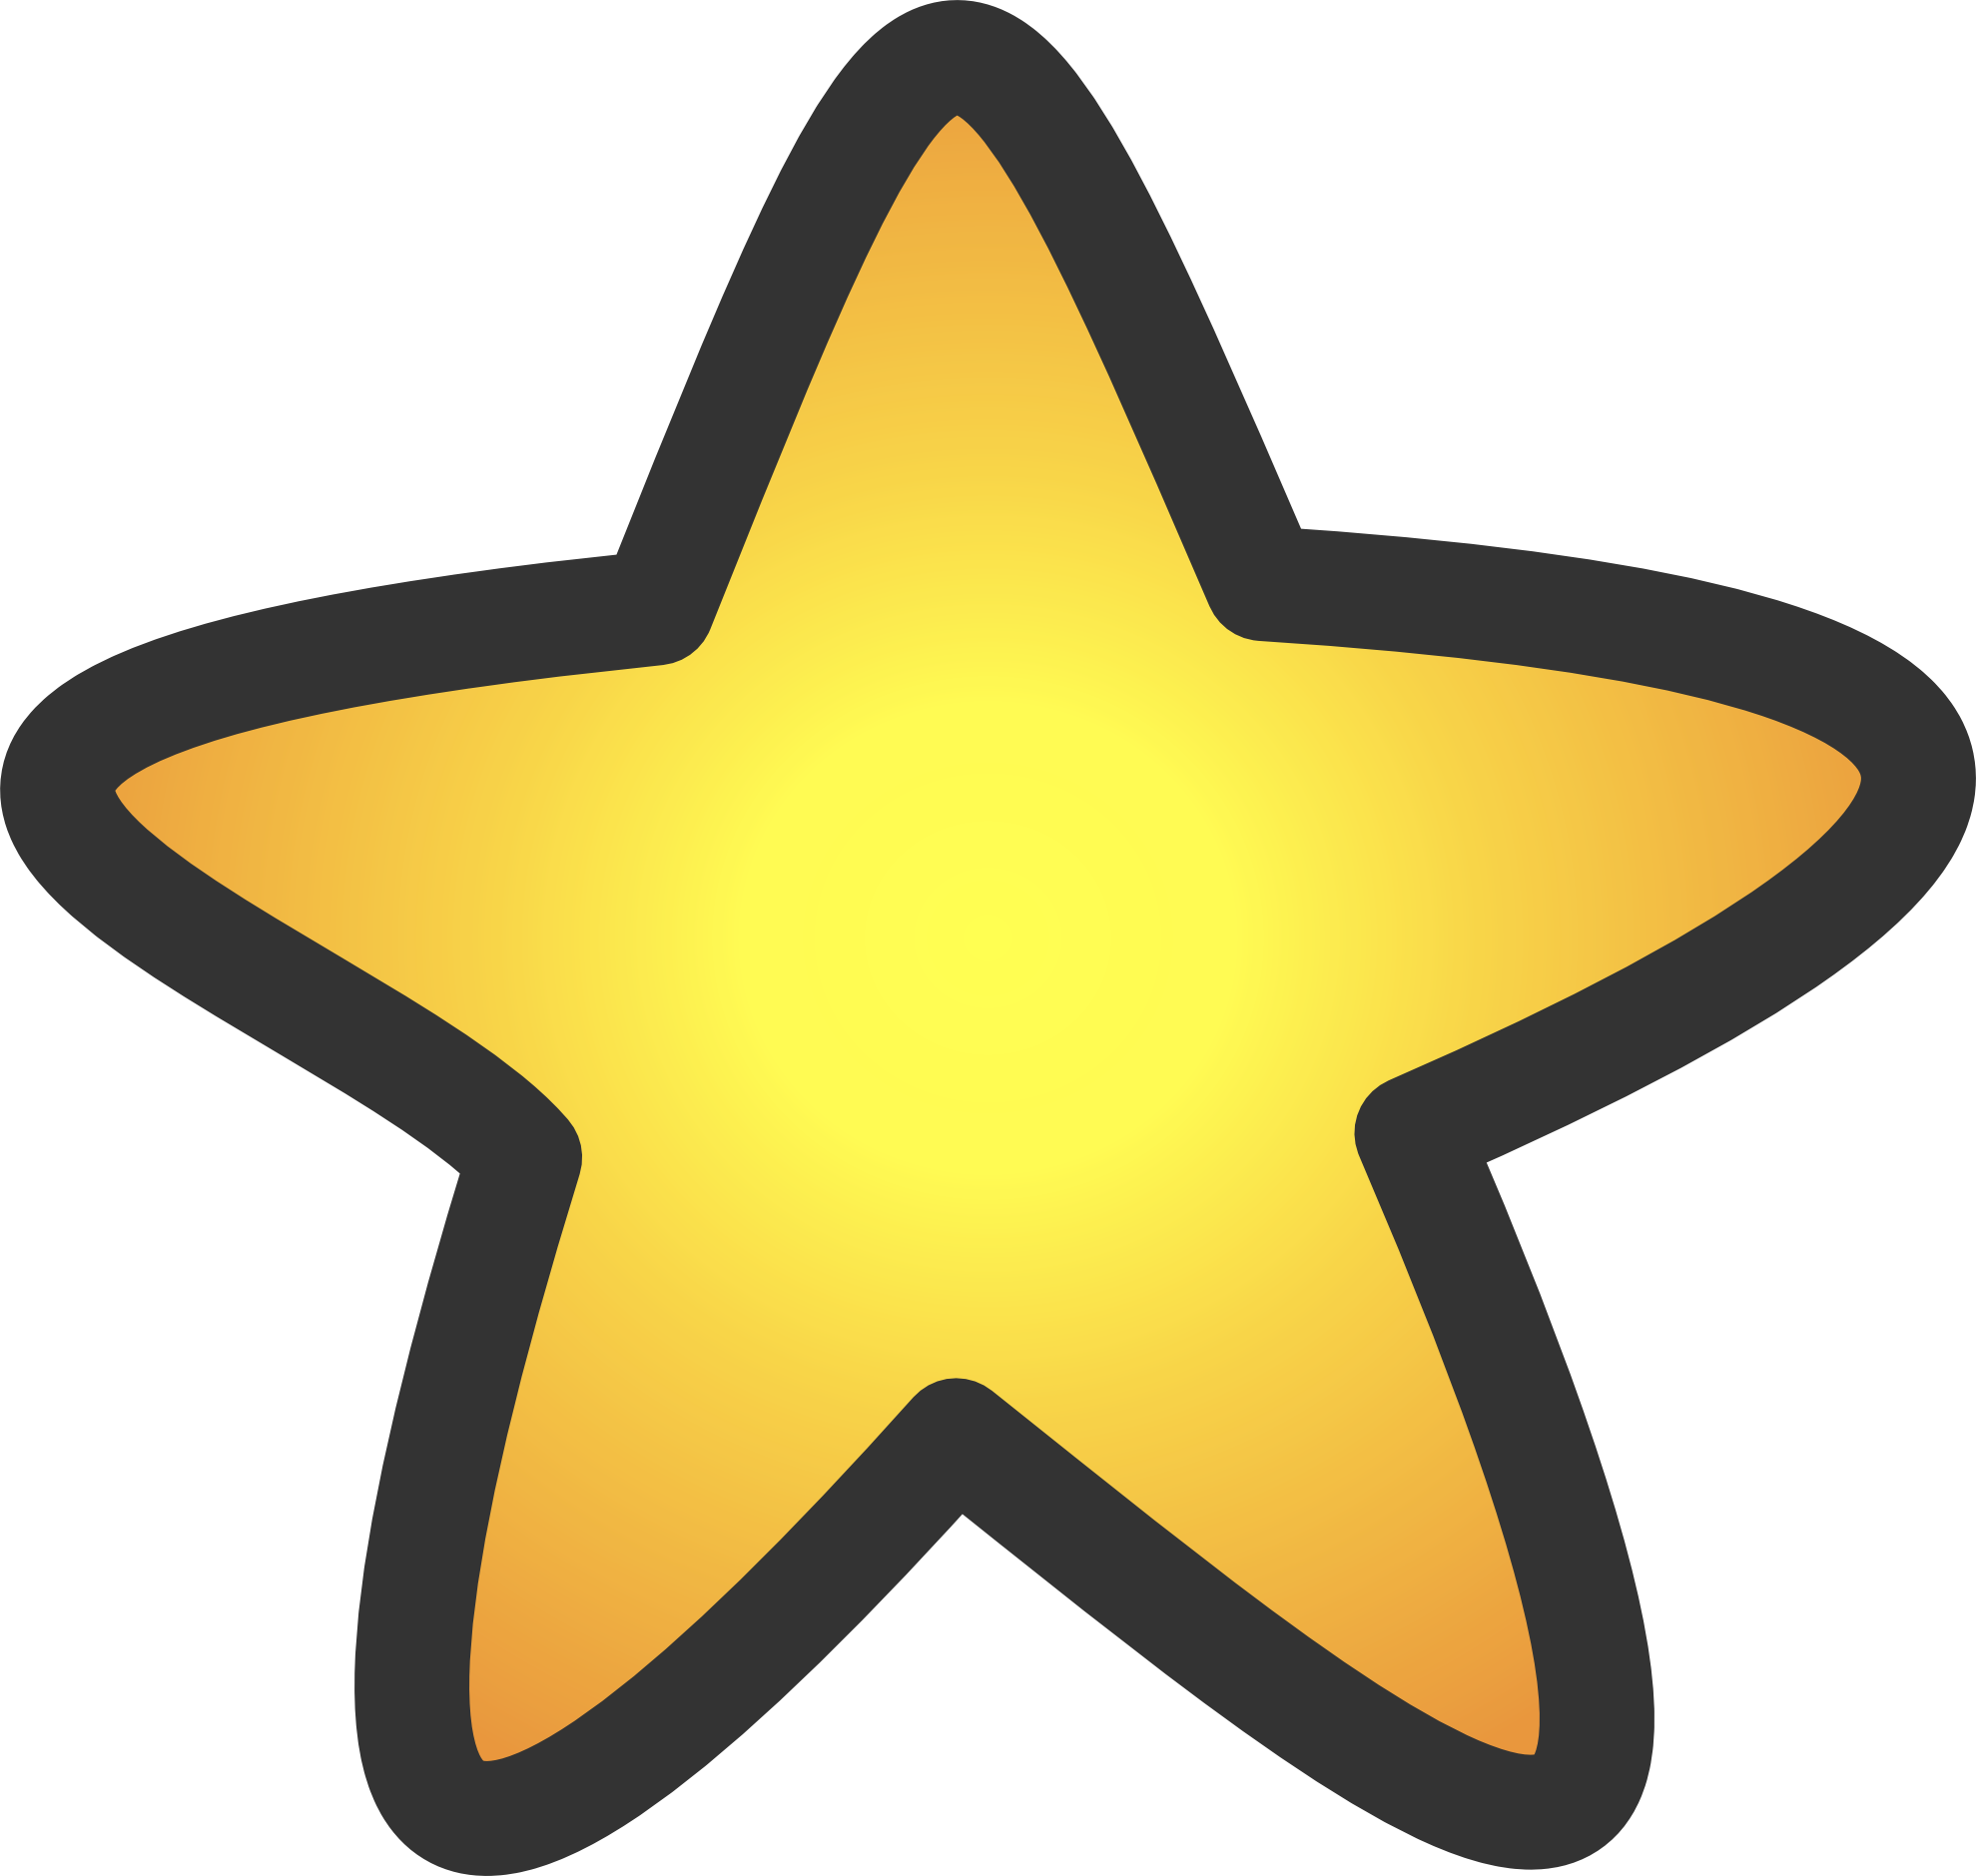 Gold clipart shooting star. Panda free images goldstarclipart